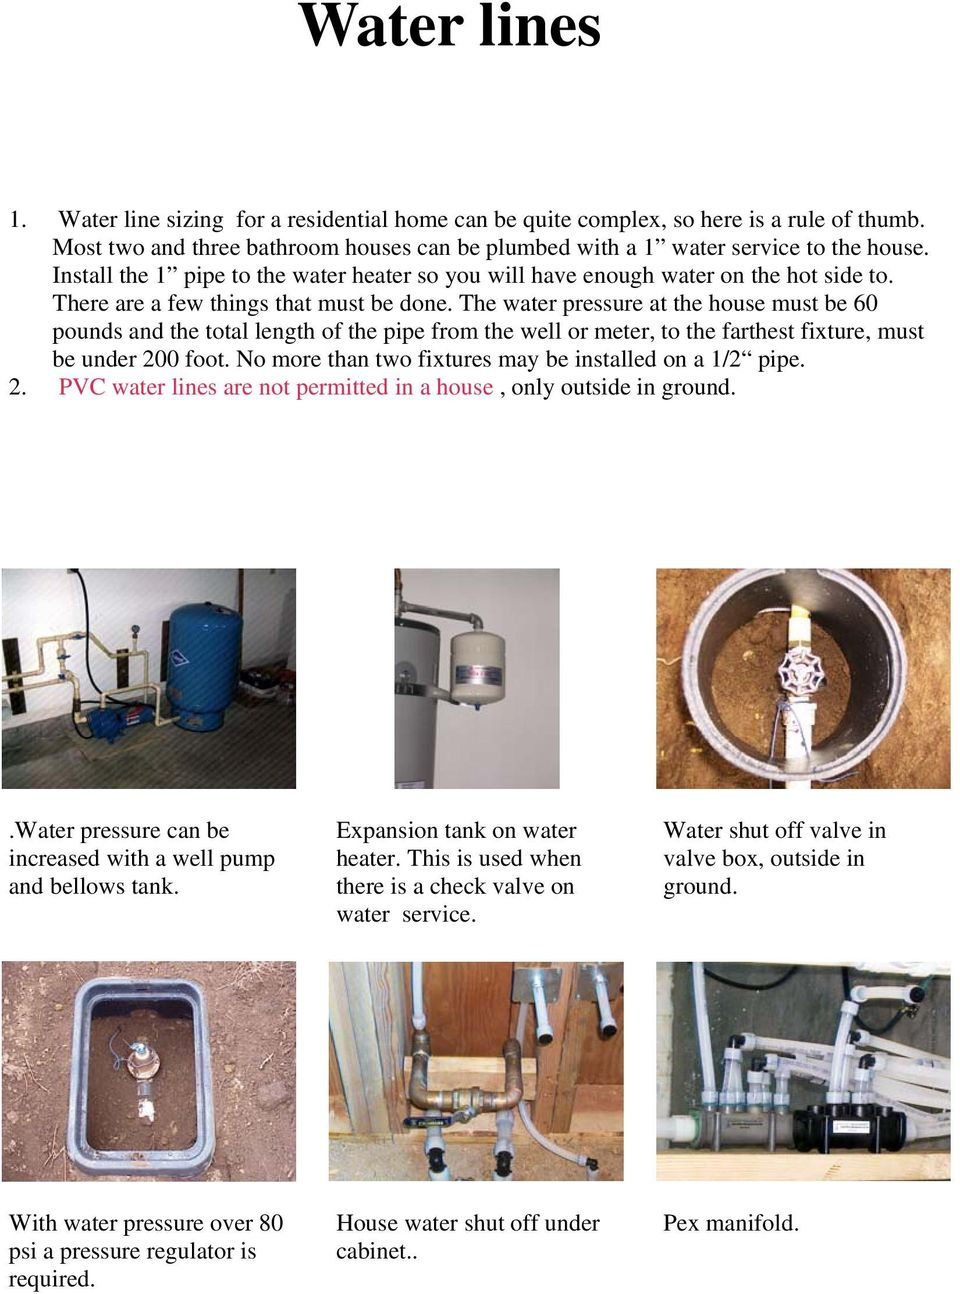 The water pressure at the house must be 60 pounds and the total length of the pipe from the well or meter, to the farthest fixture, must be under 200 foot.